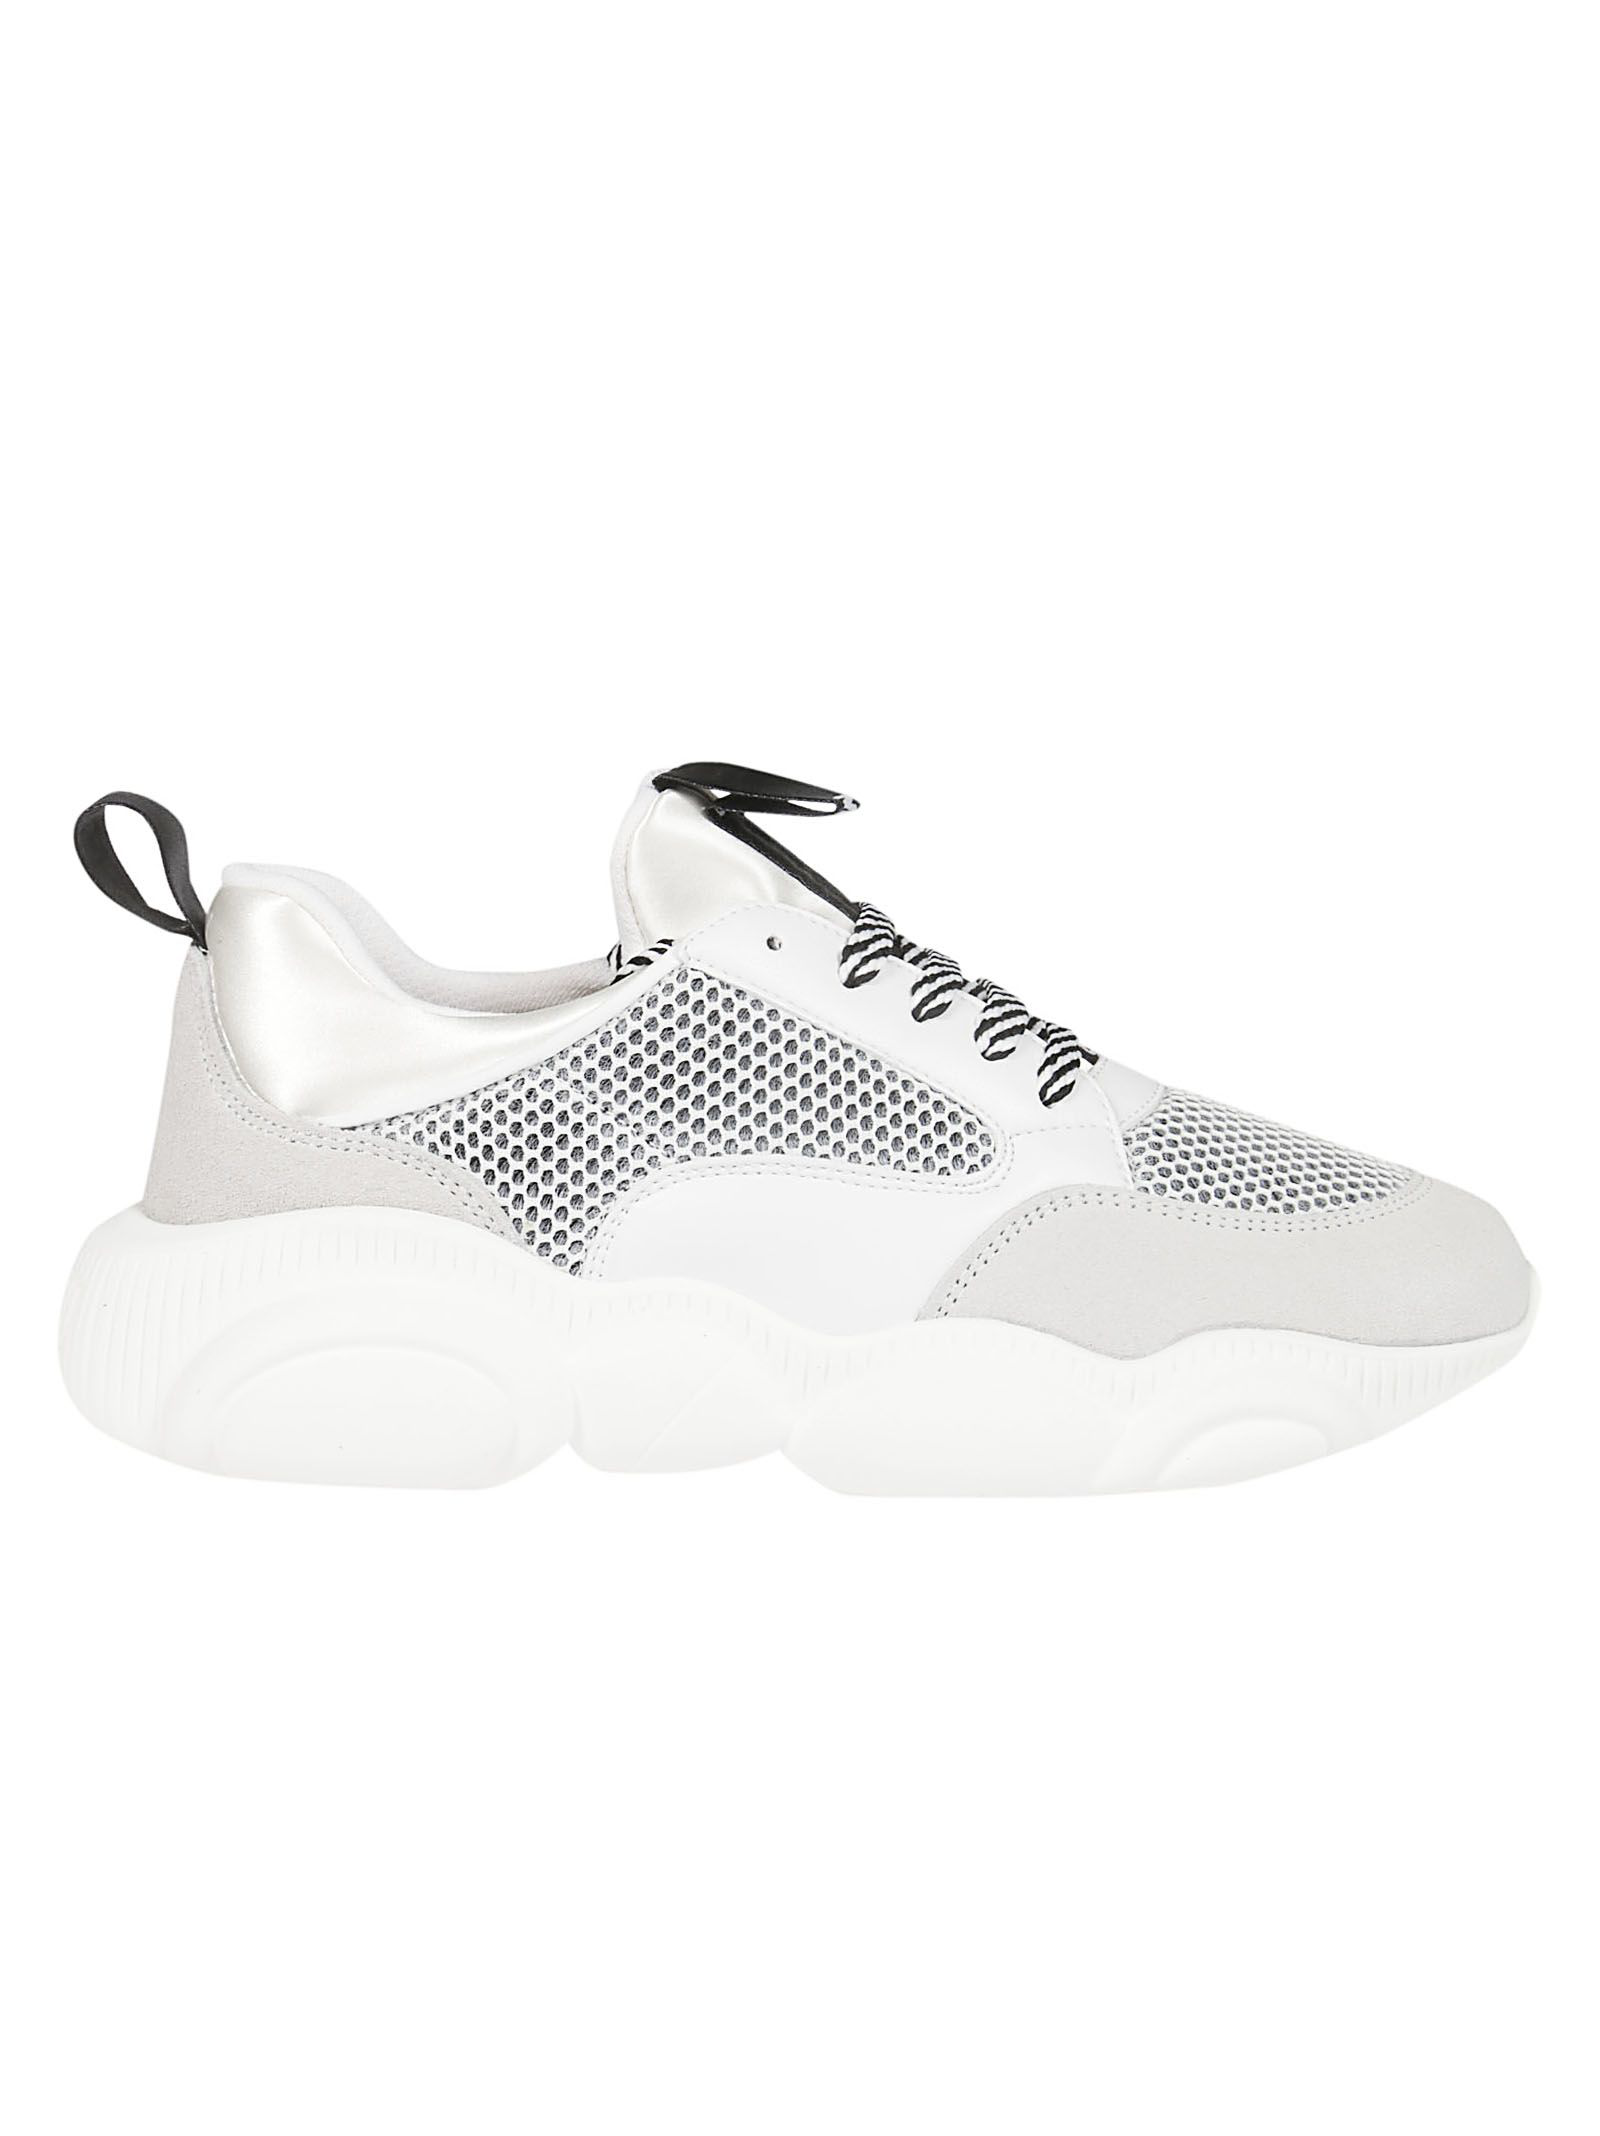 8dcbfb40a7 Moschino Teddy Run Sneakers In Mesh, Calfskin And Split Leather In 10A White